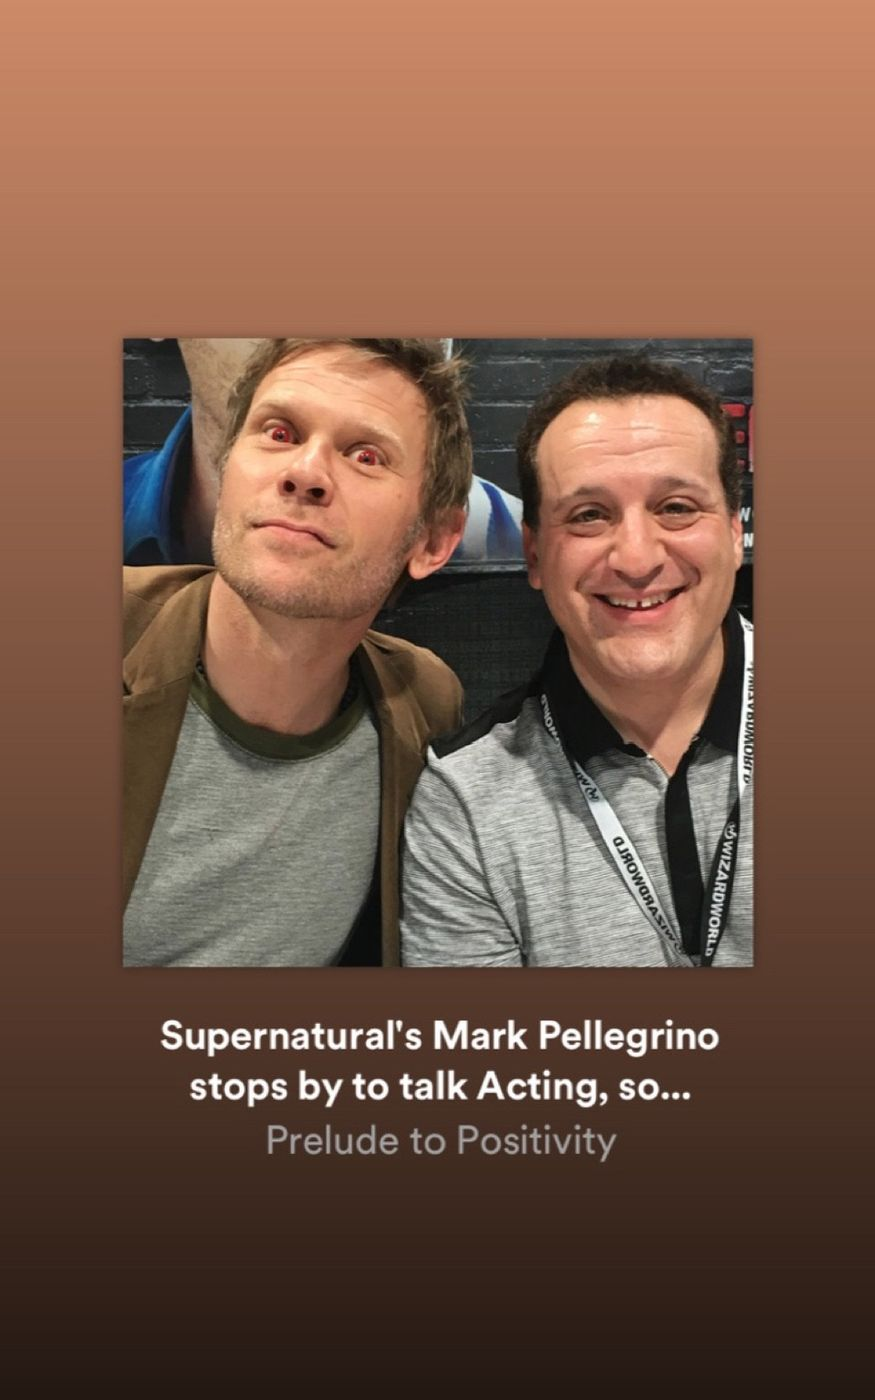 Prelude to Positivity interview with Supernatural's Mark Pellegrino